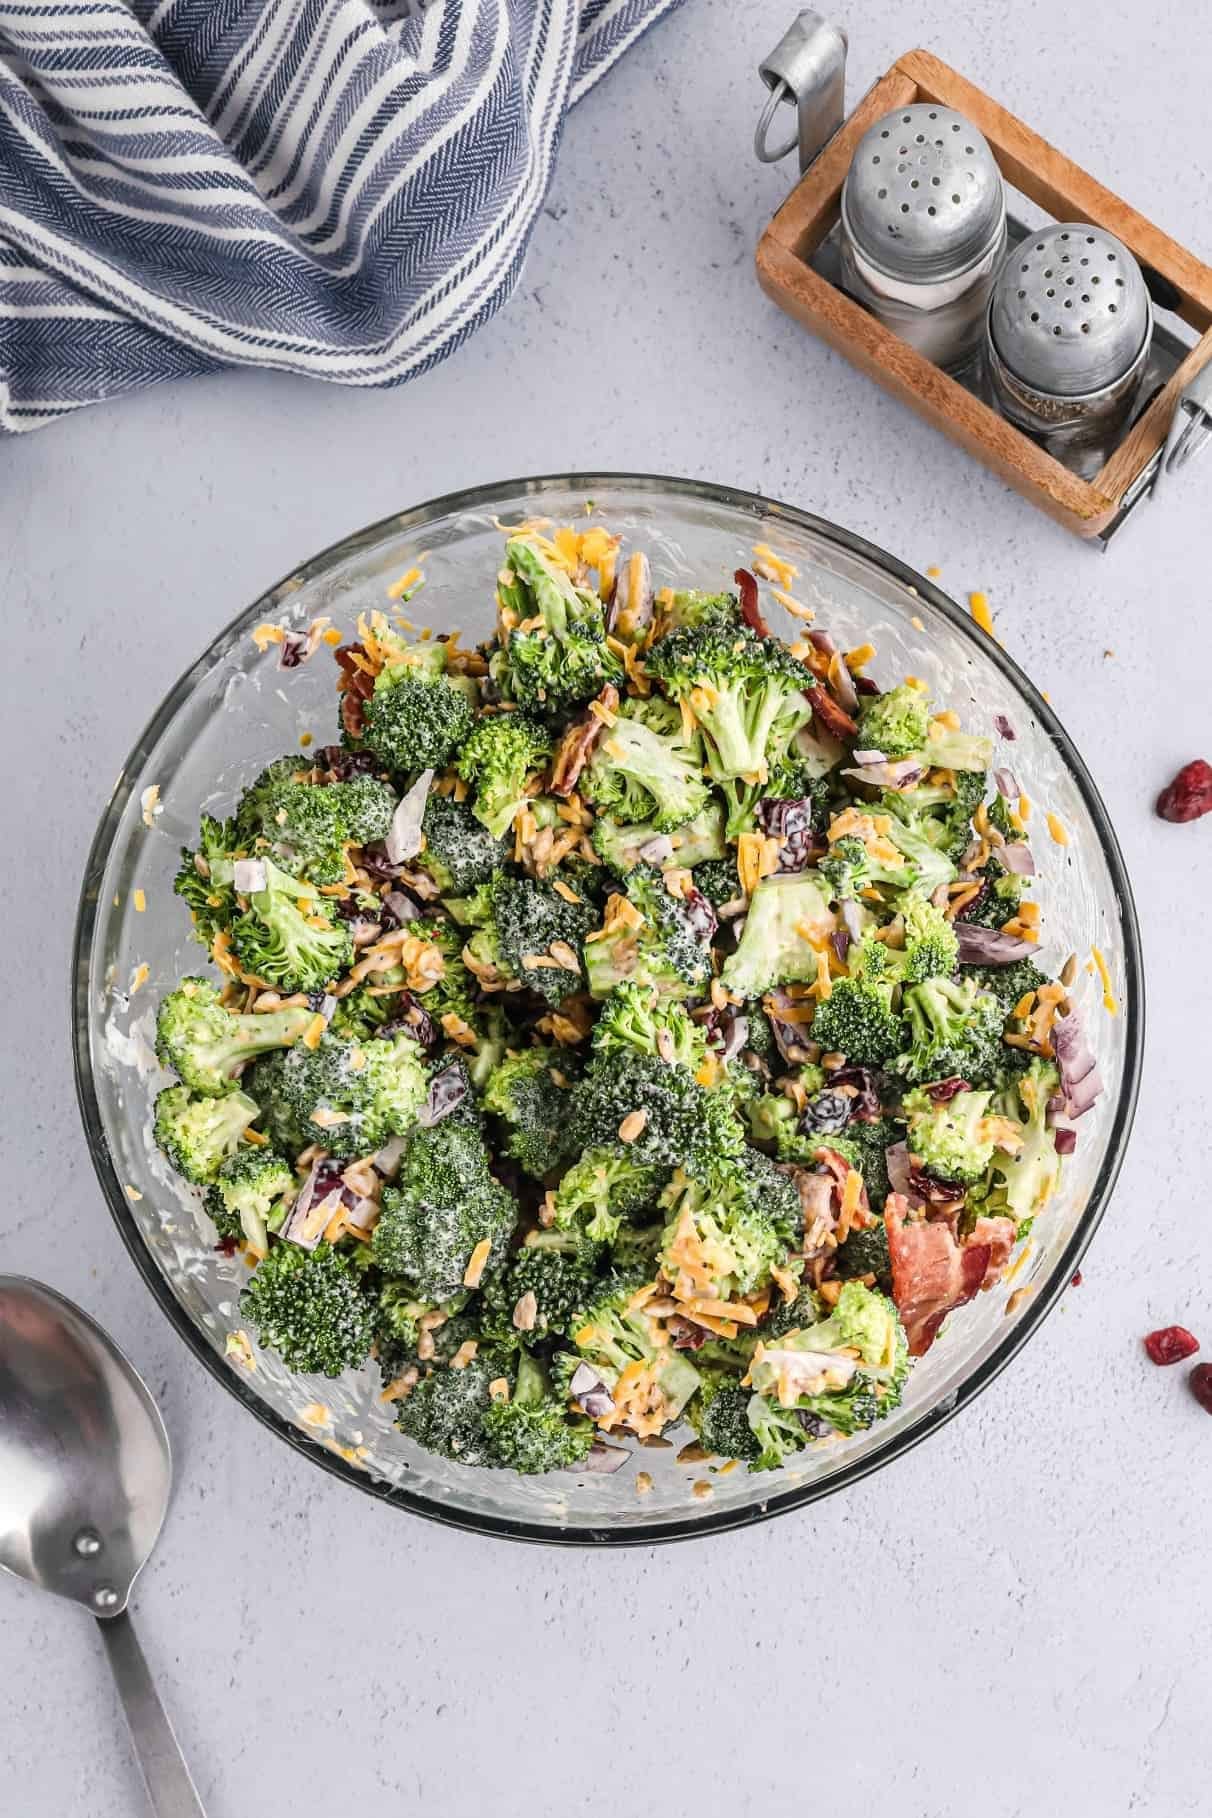 Broccoli salad in a clear glass bowl.